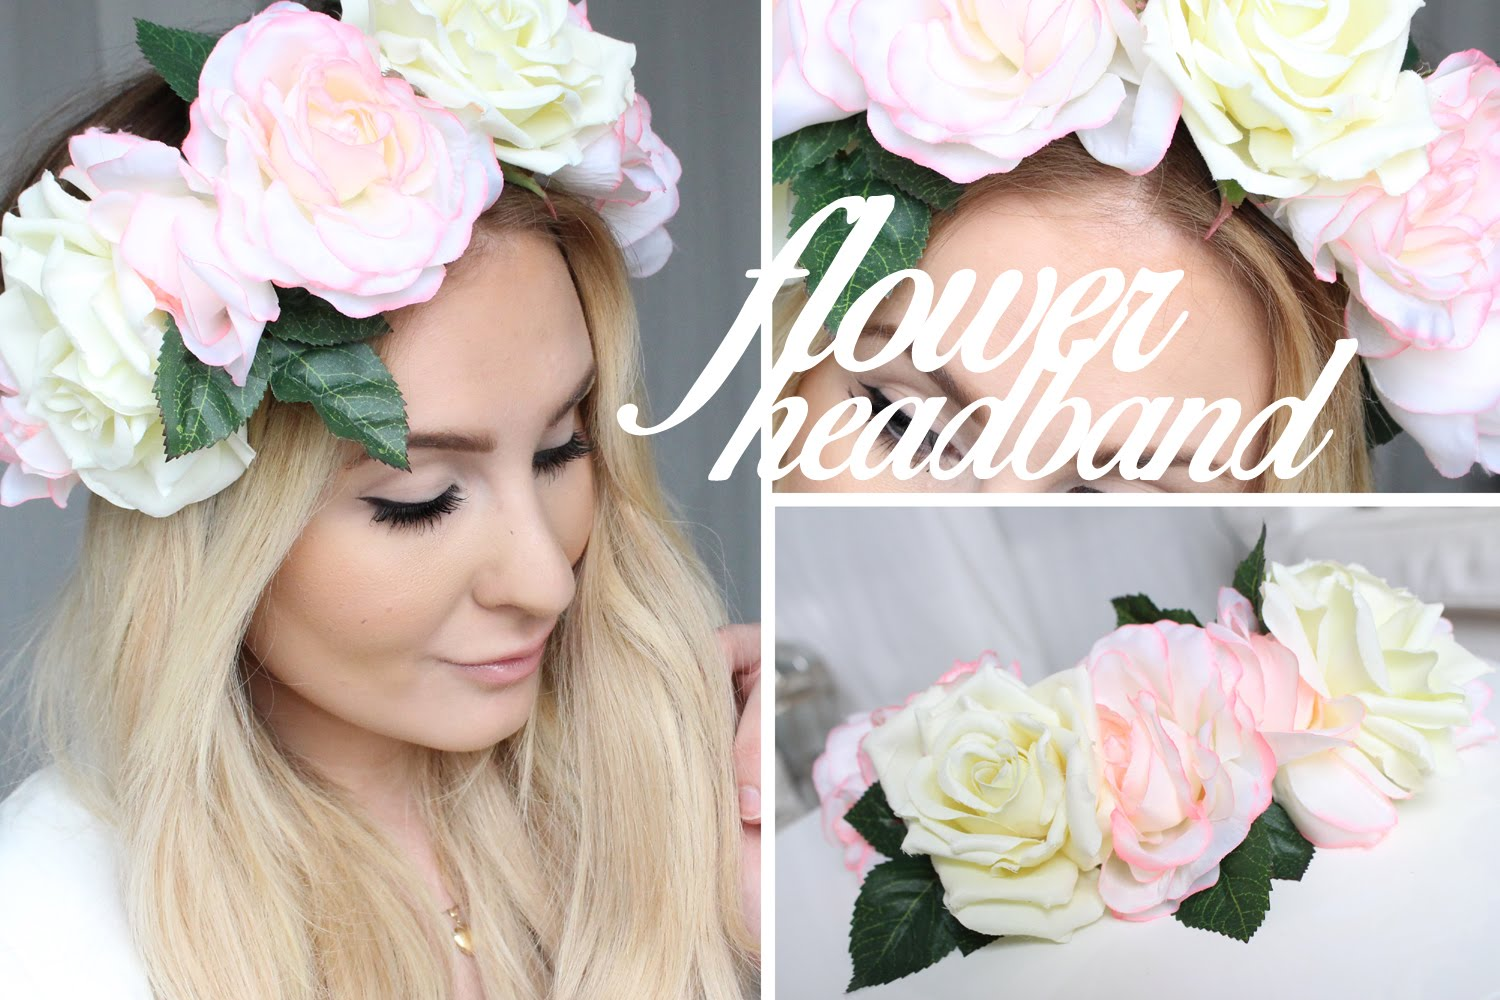 20 Pretty Diy Flower Headbands To Look Stylish And Chic Craftsonfire